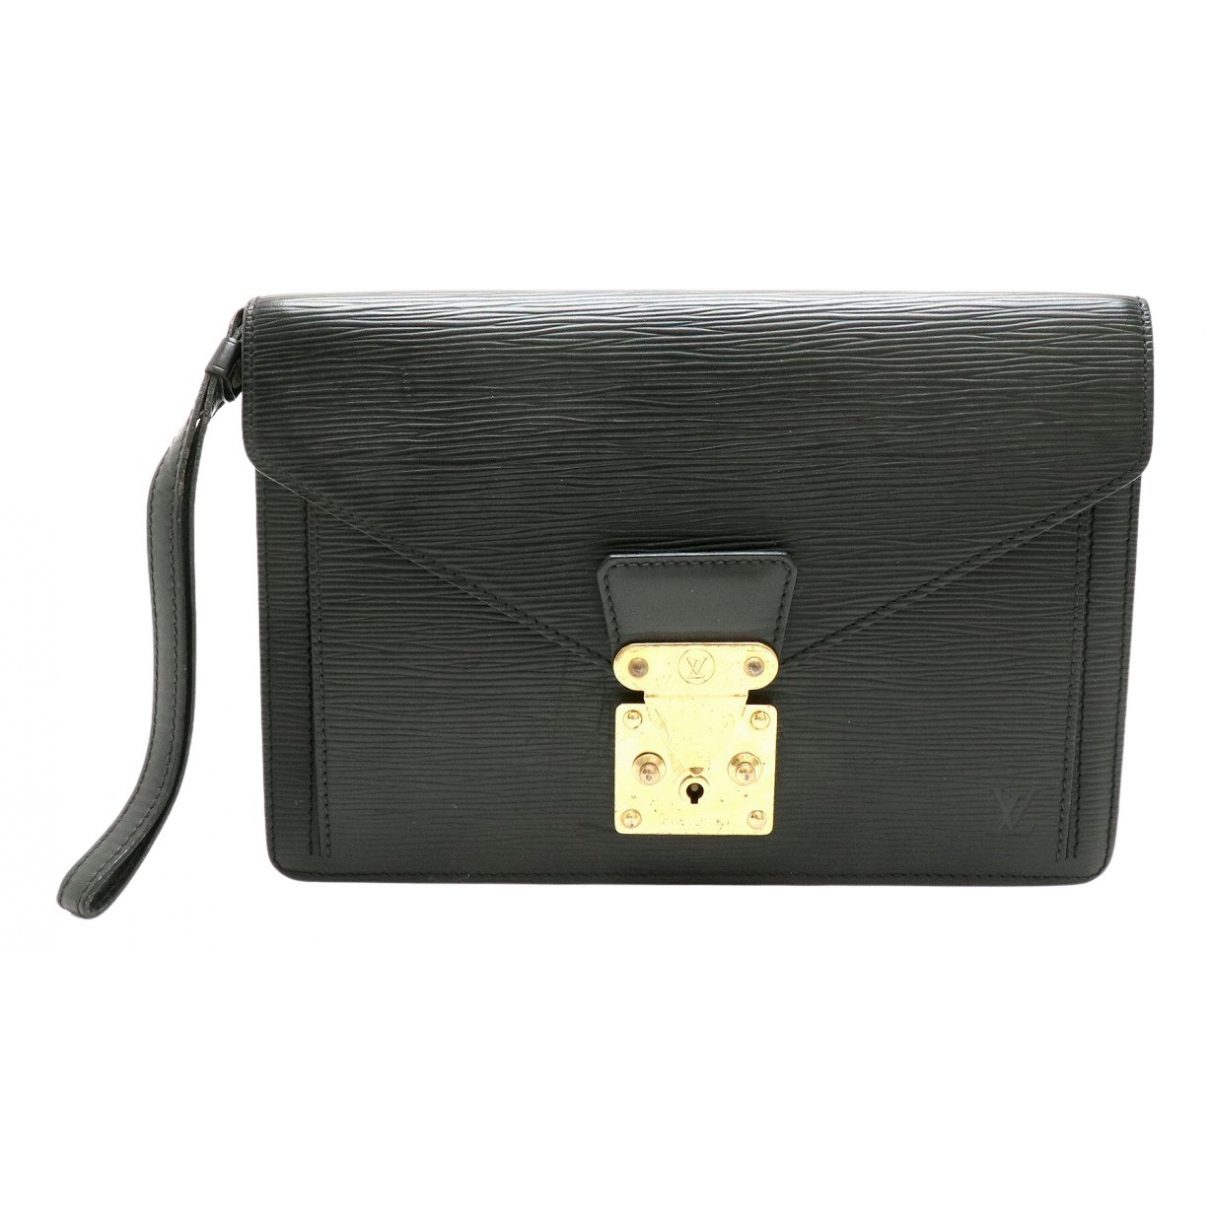 Louis Vuitton Sellier Black Leather Clutch bag for Women N